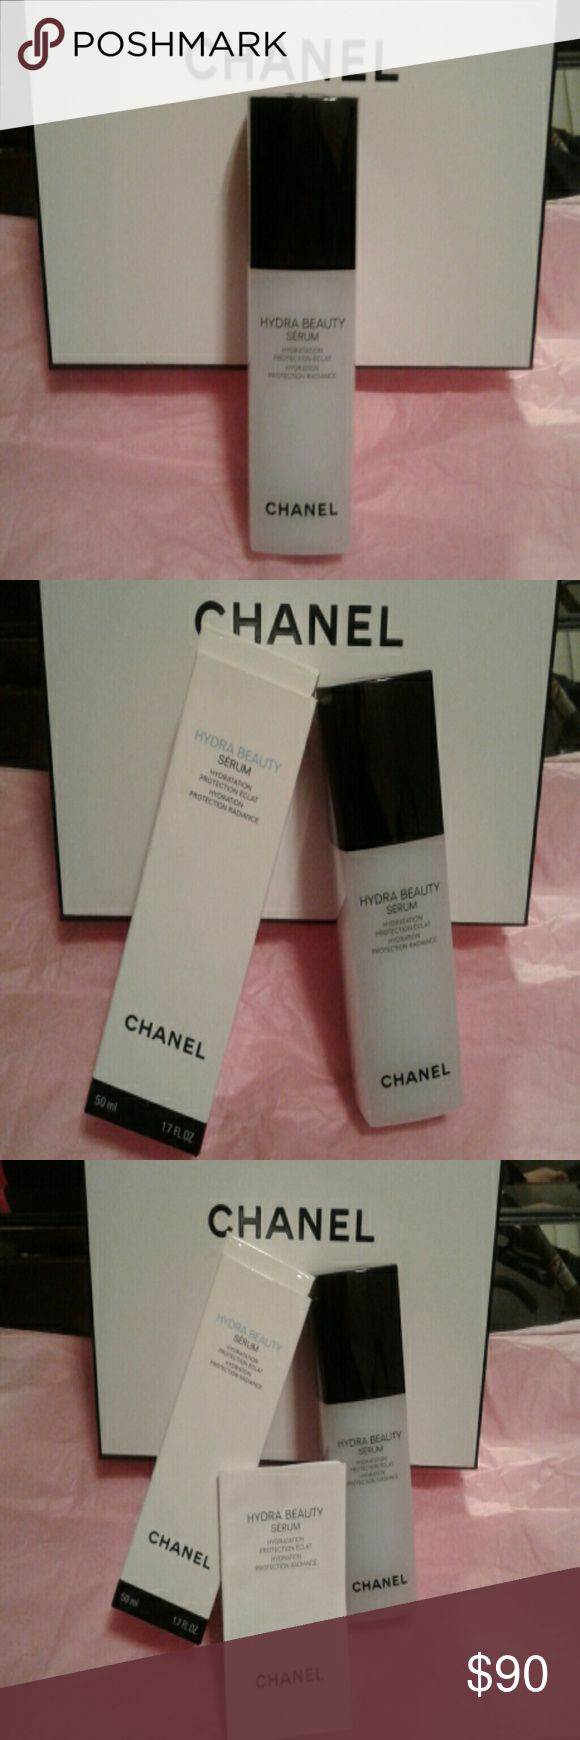 CHANEL HYDRA BEAUTY SERUM Hydration protection radiance serum. Unopened, still in box with pamphlet. CHANEL Makeup